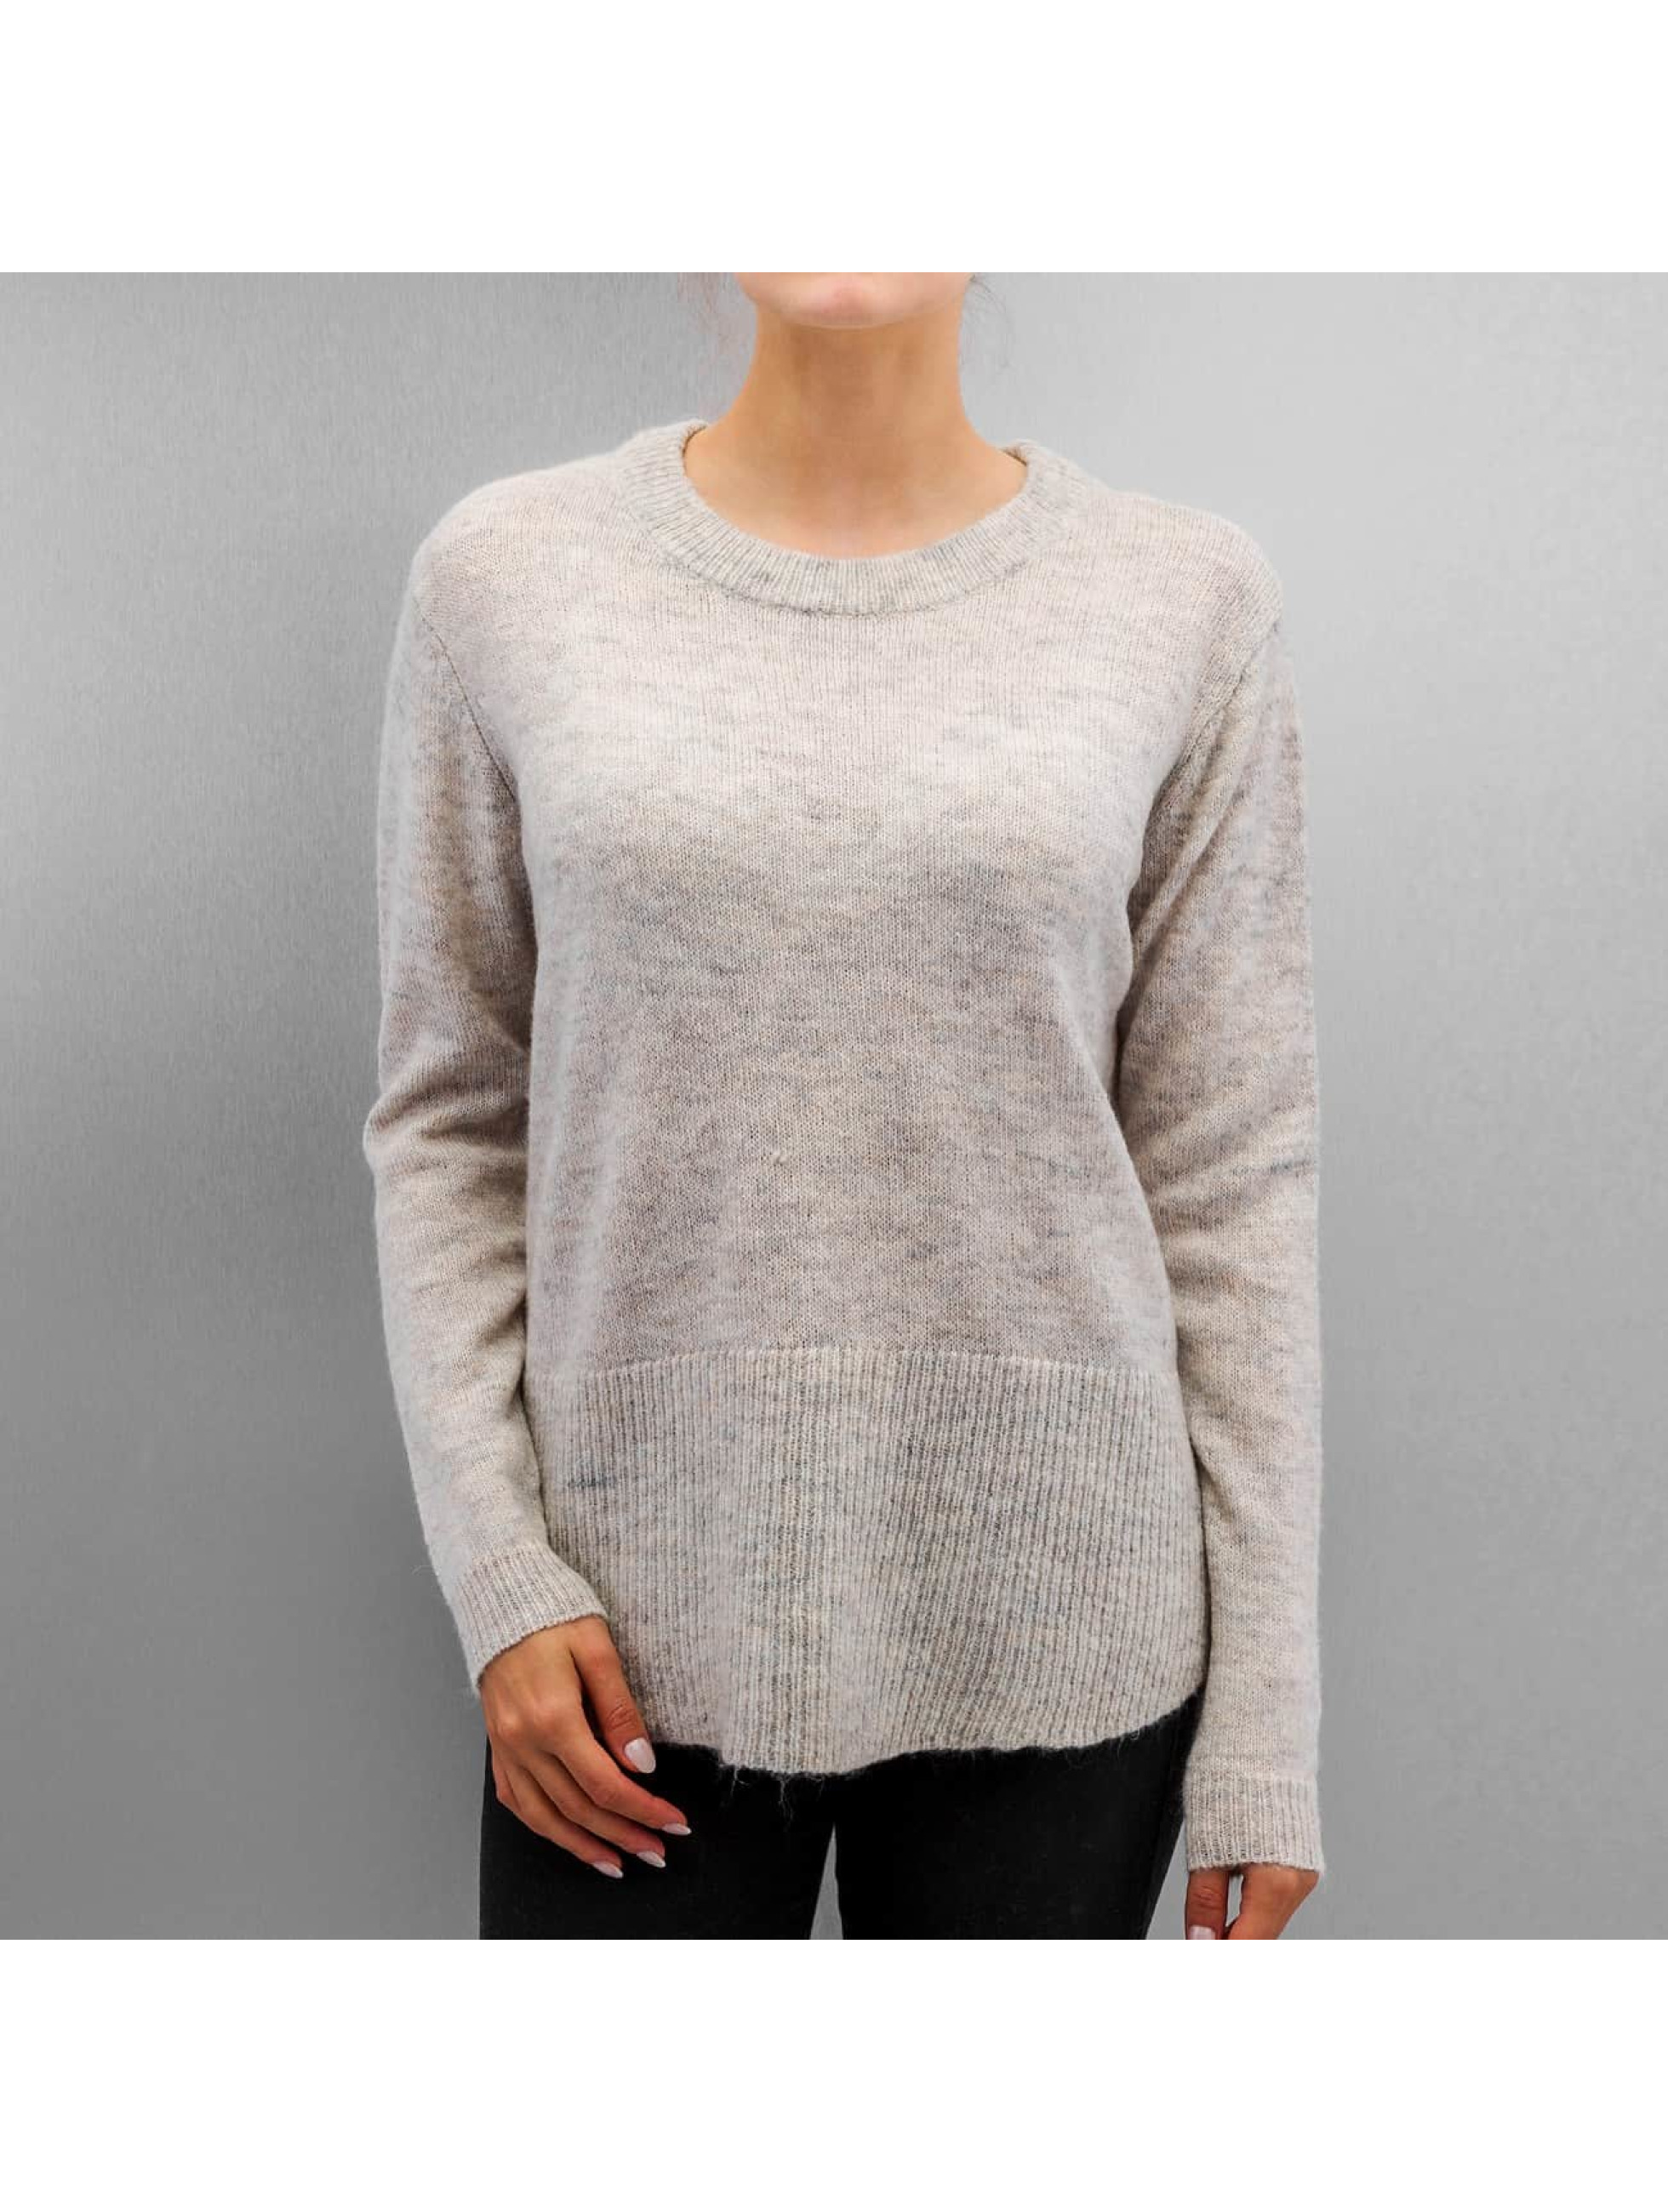 Pullover PCDanny Mohair Knit in grau